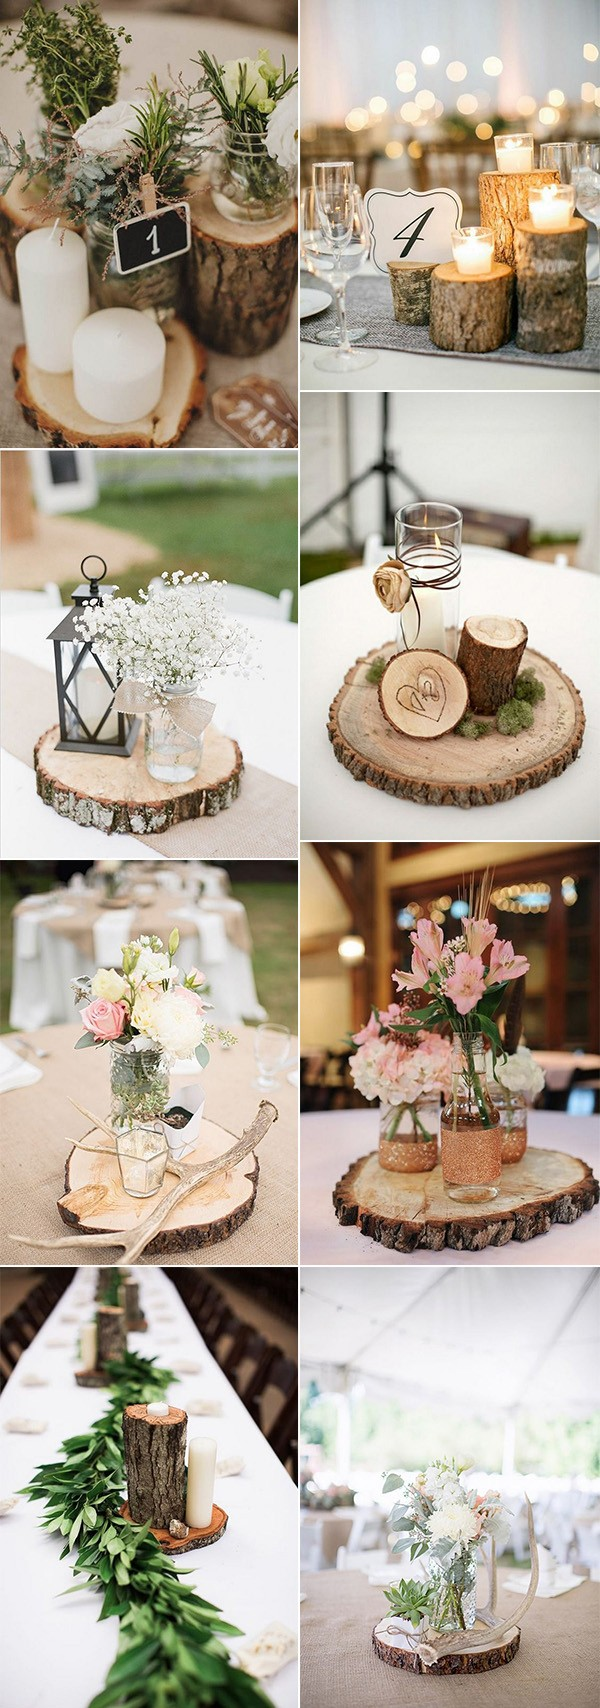 country rustic wedding centerpiece ideas with tree stumps